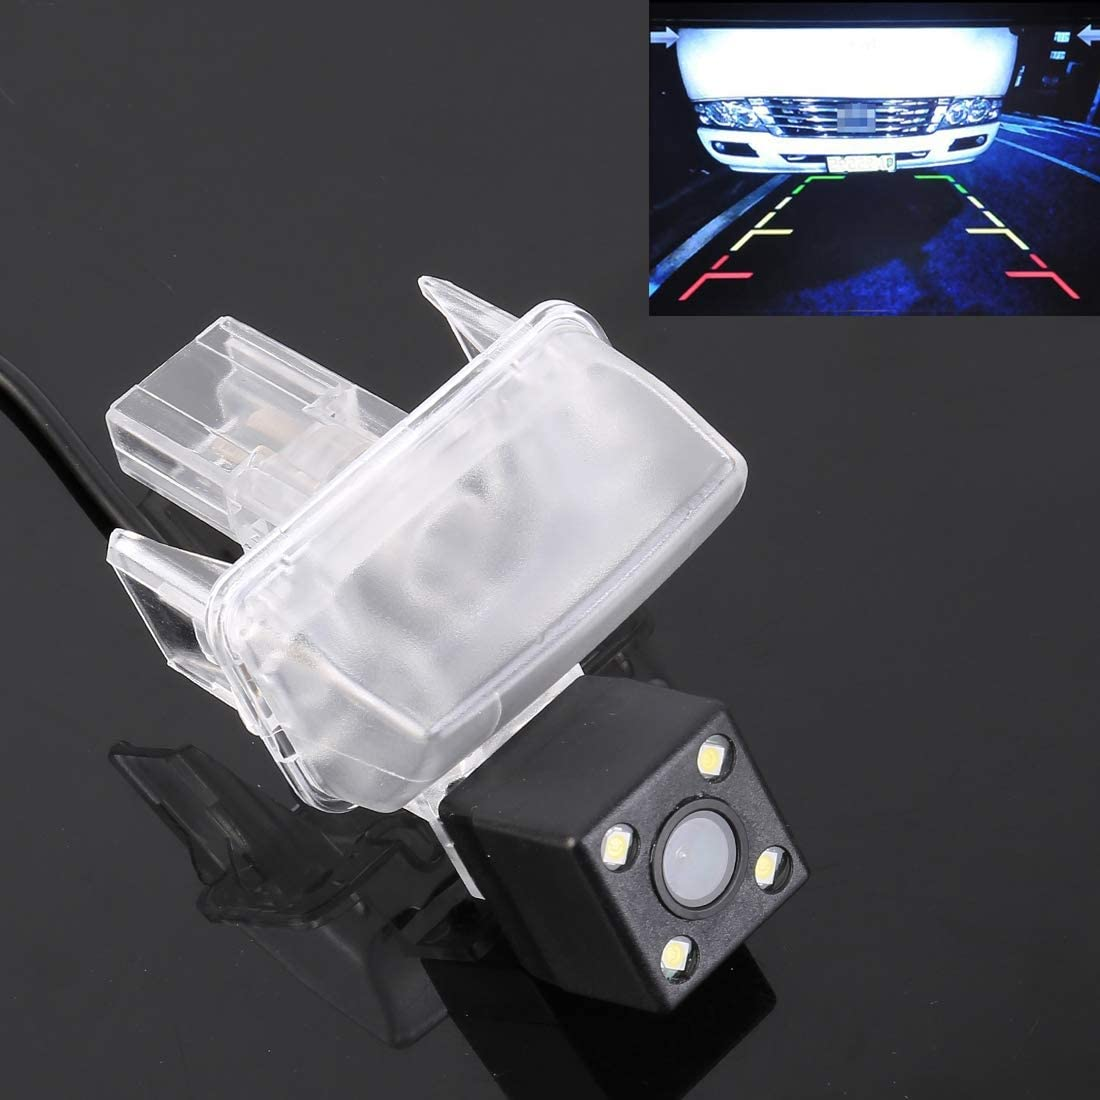 DXM Car Backup Camera HD Rear System Sale Special Price Image View 72 At the price Reversing